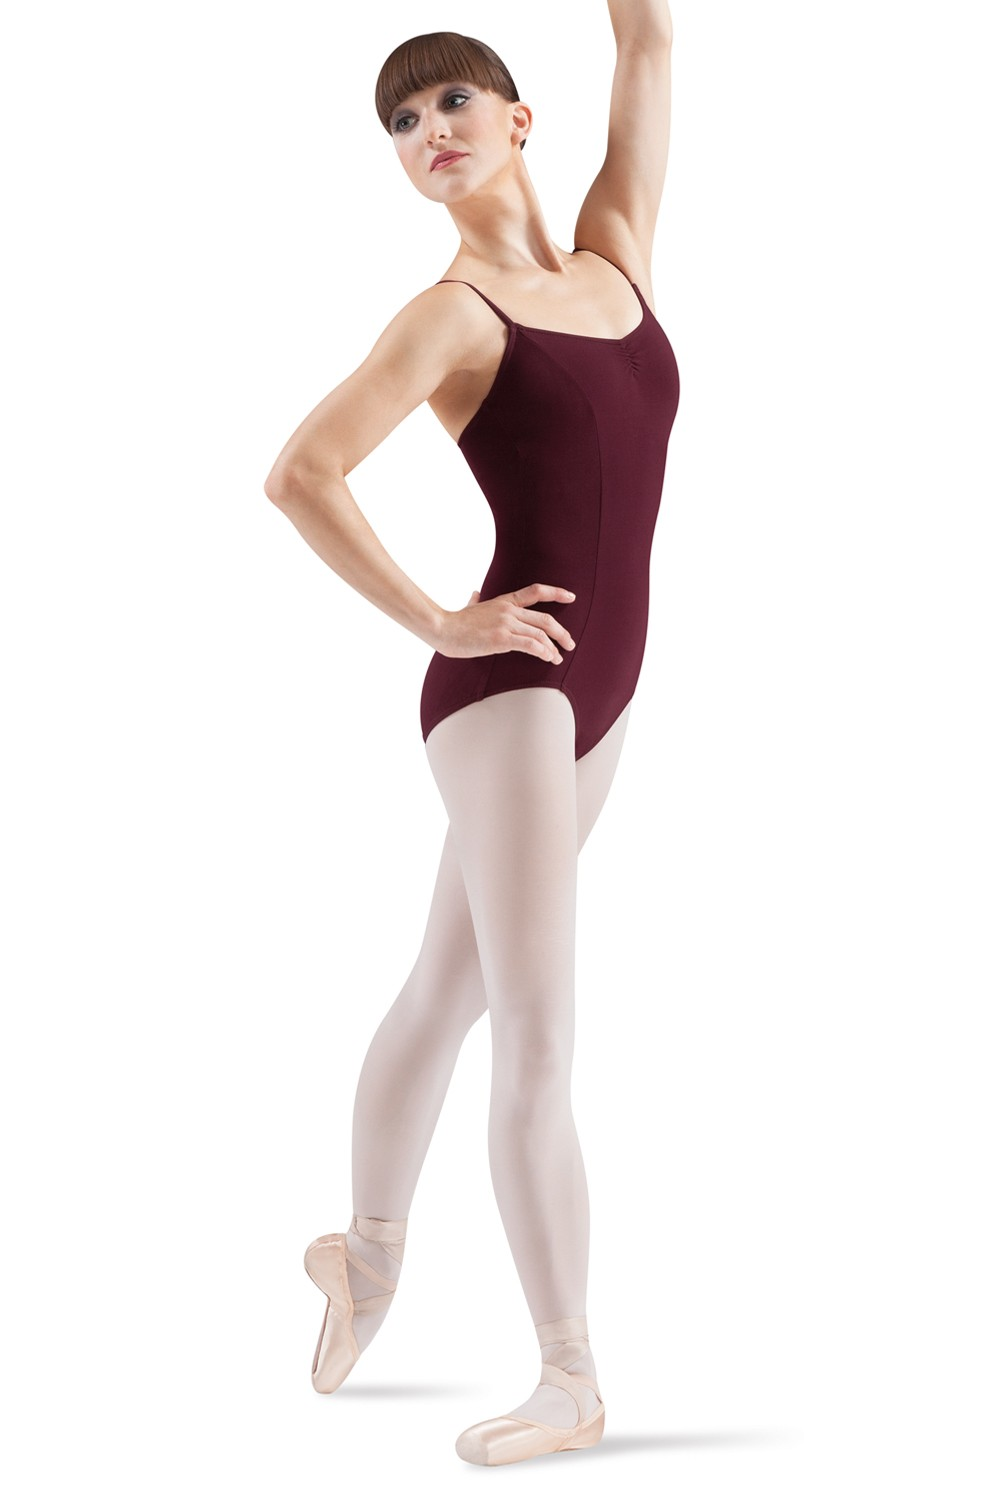 Arpeggio Women's Dance Leotards